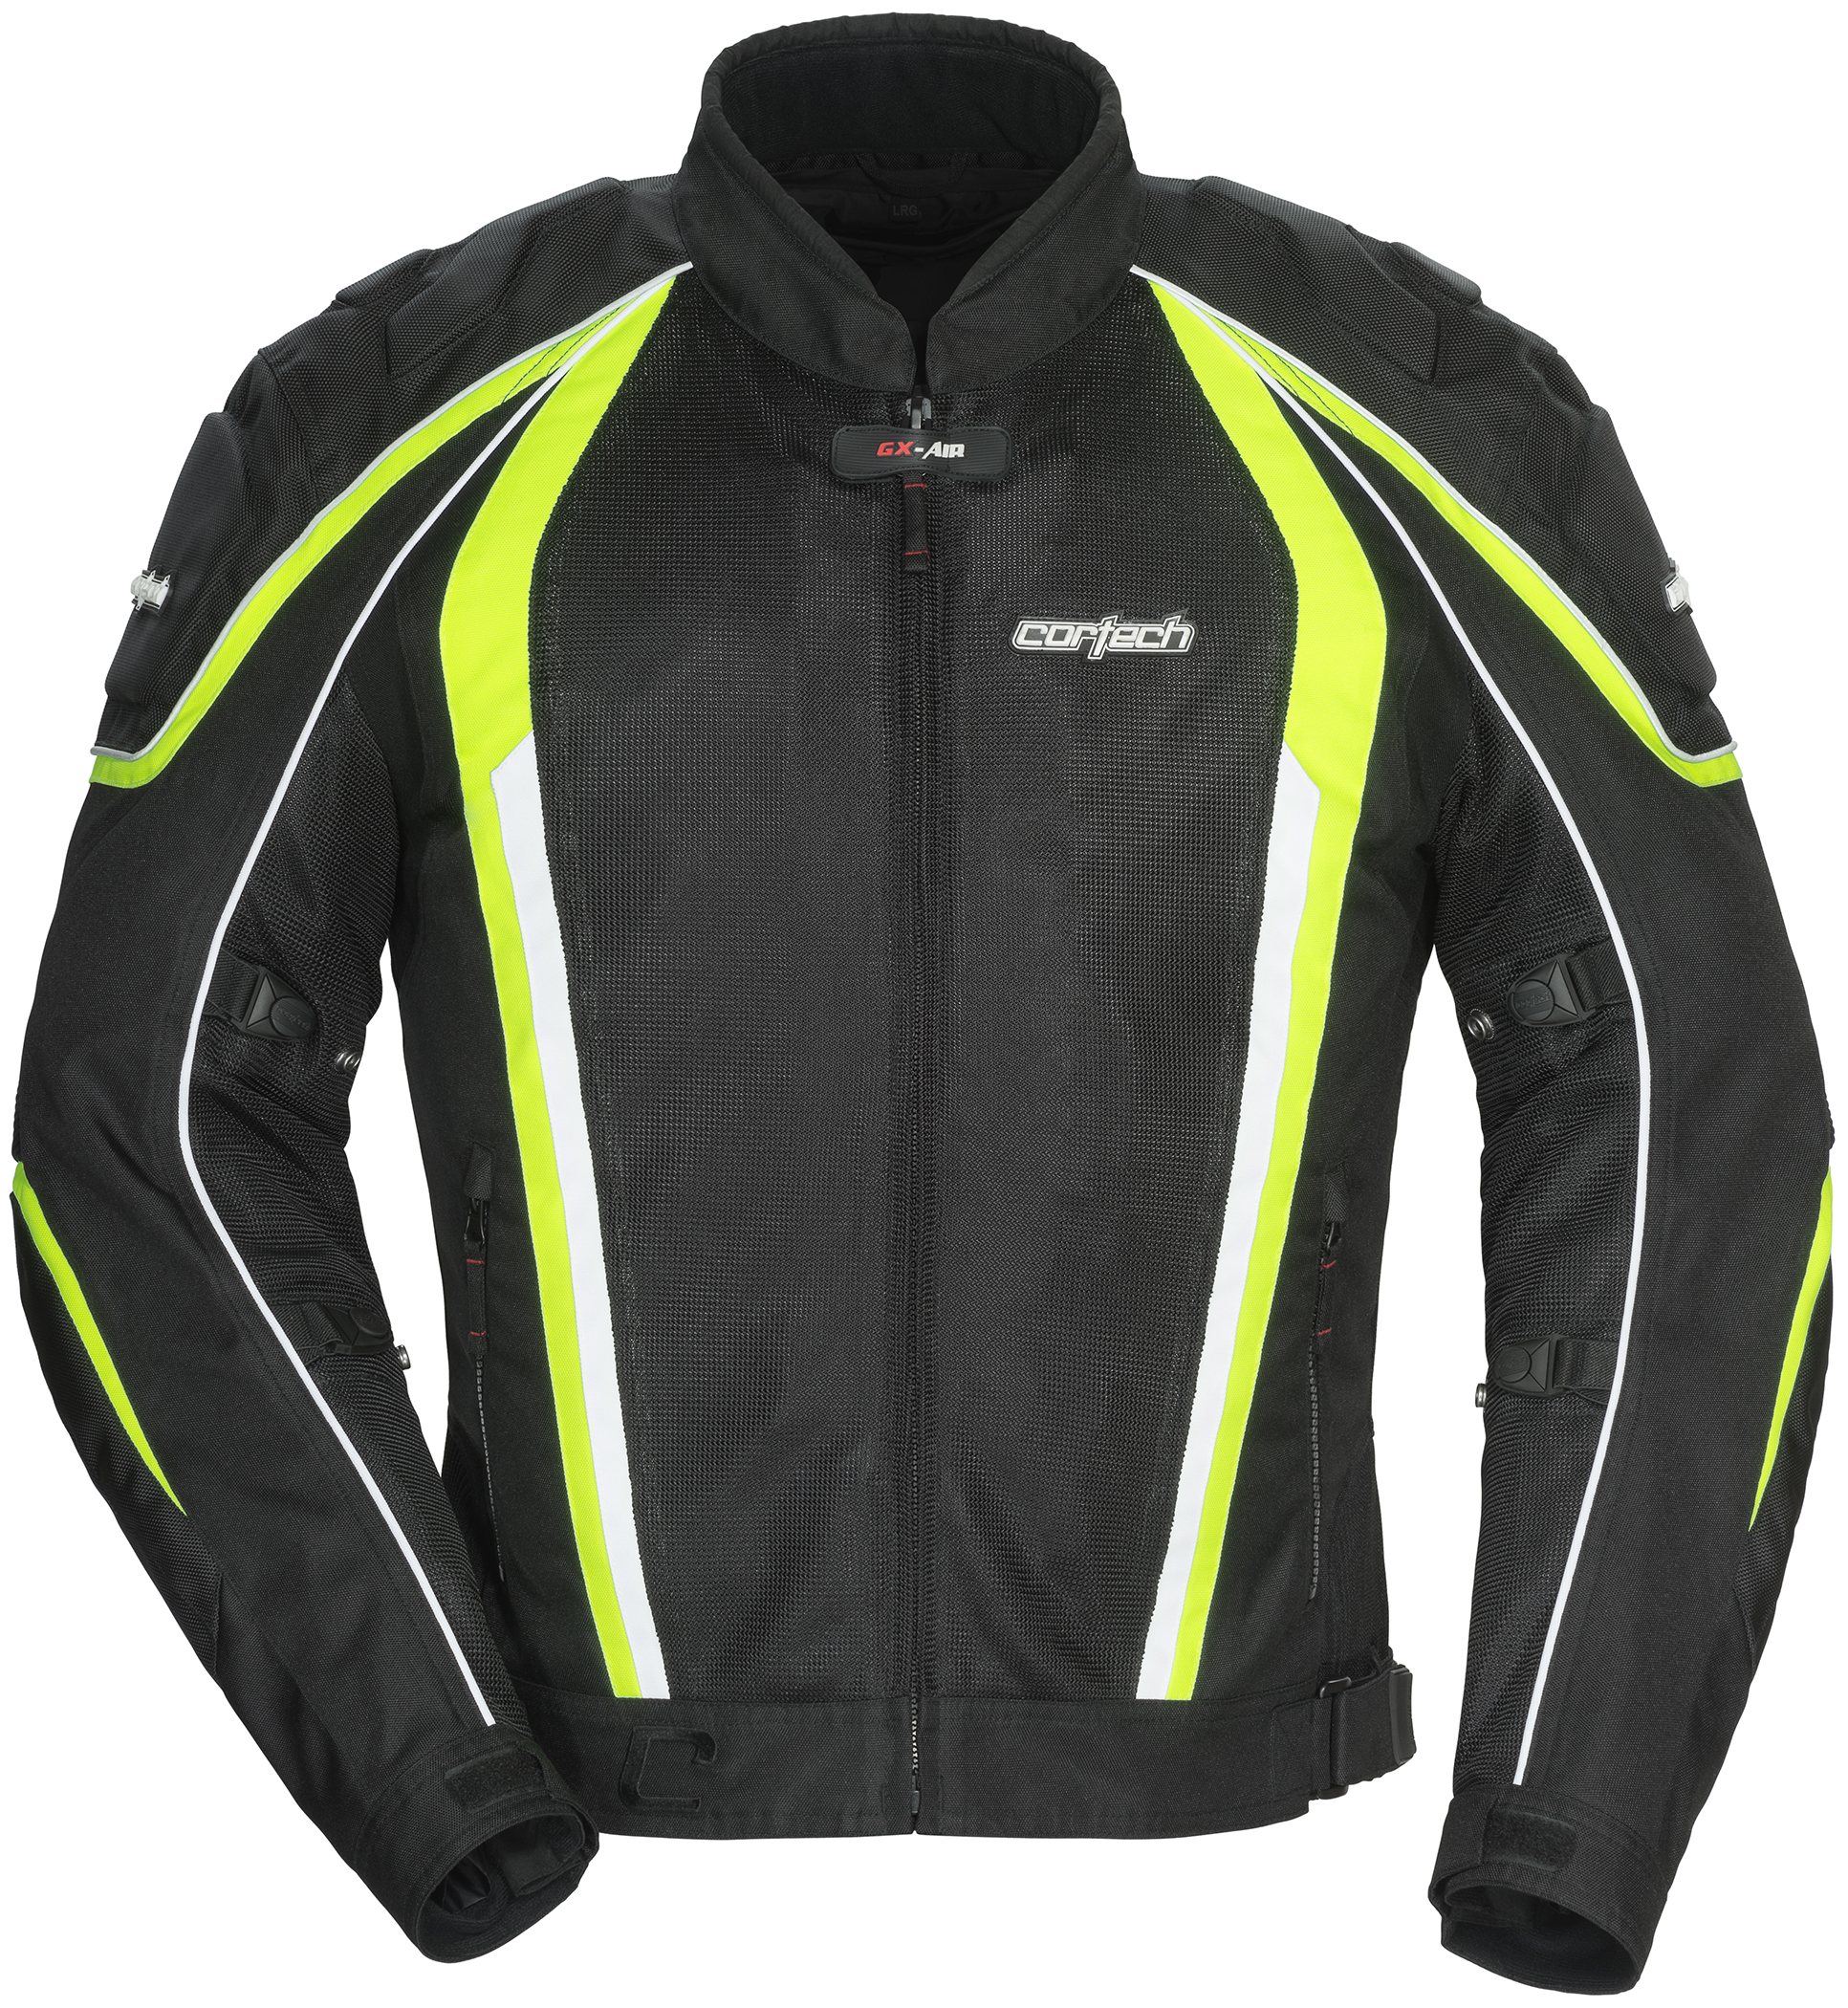 Cortech GX Sport Air 4 Jacket